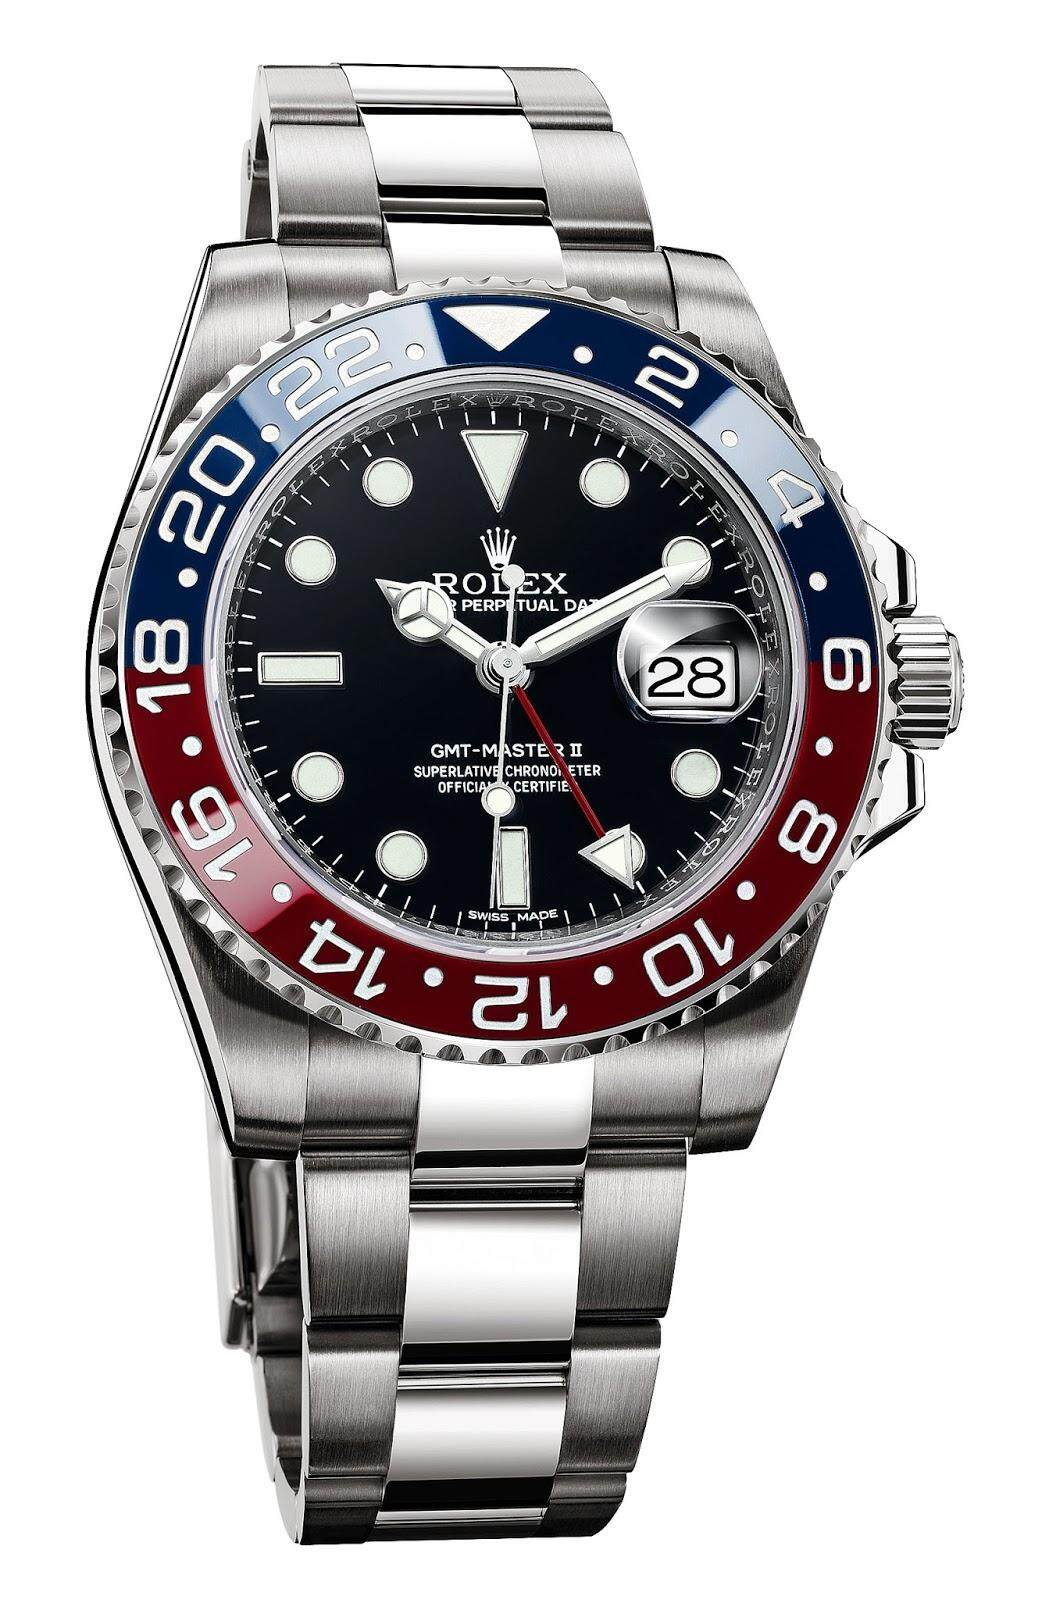 ROLEX GMT 2 ( Cheapest Price Guaranteed)